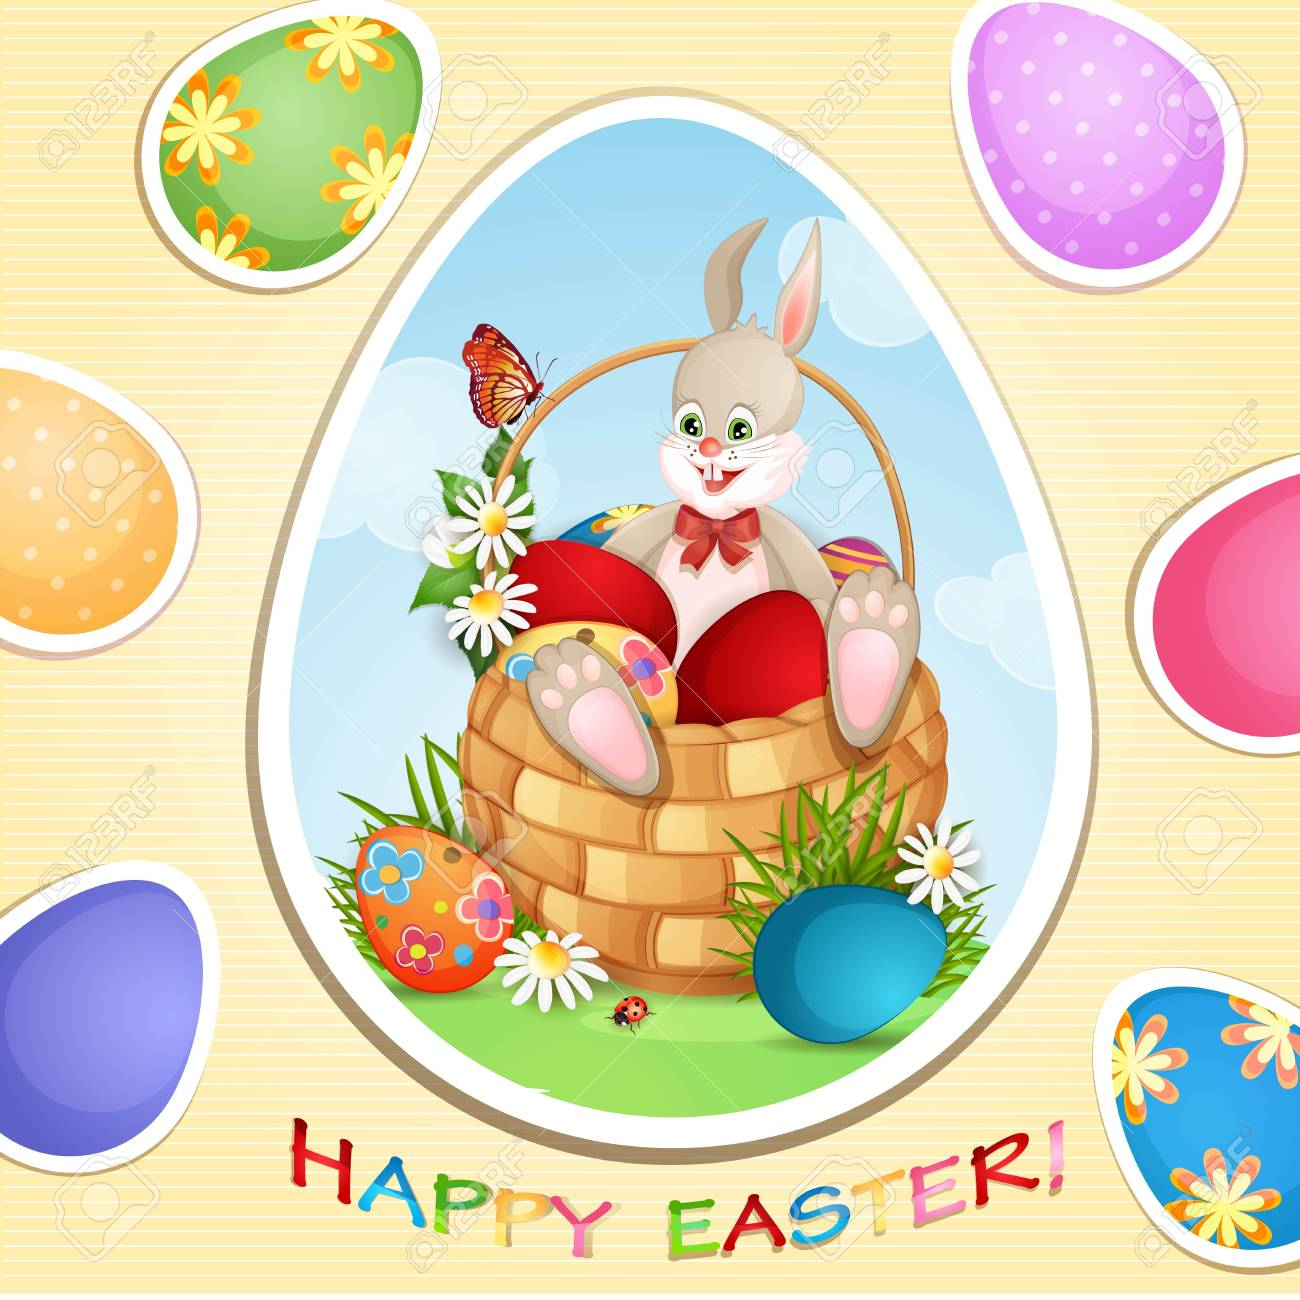 Easter greeting card with cute bunny in basket with Easter eggs Stock Vector - 18964481